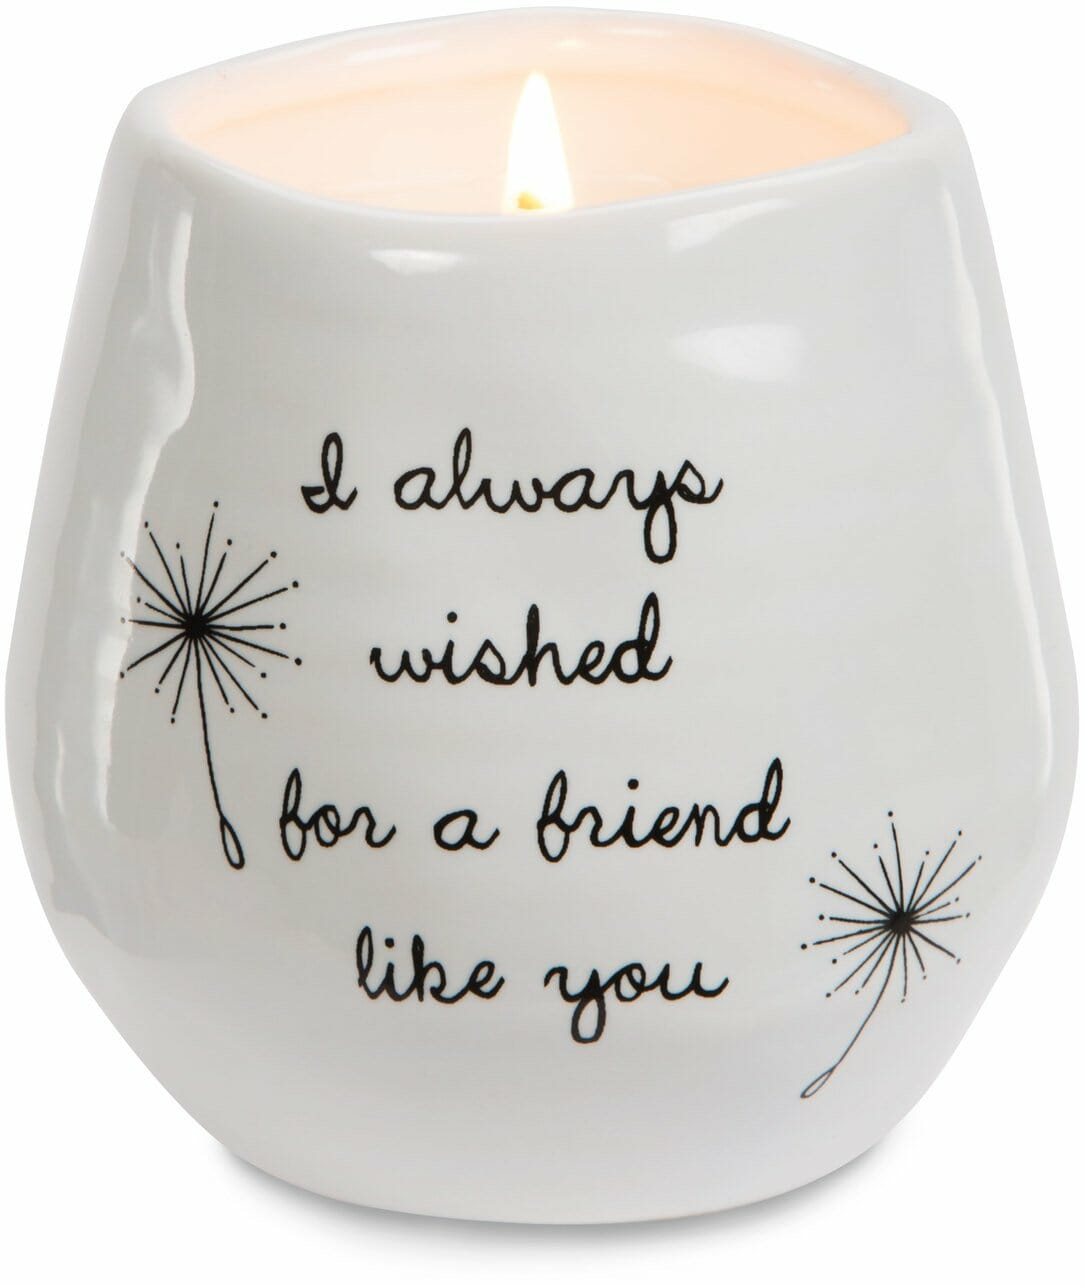 Long-distance-friends-gifts-candle